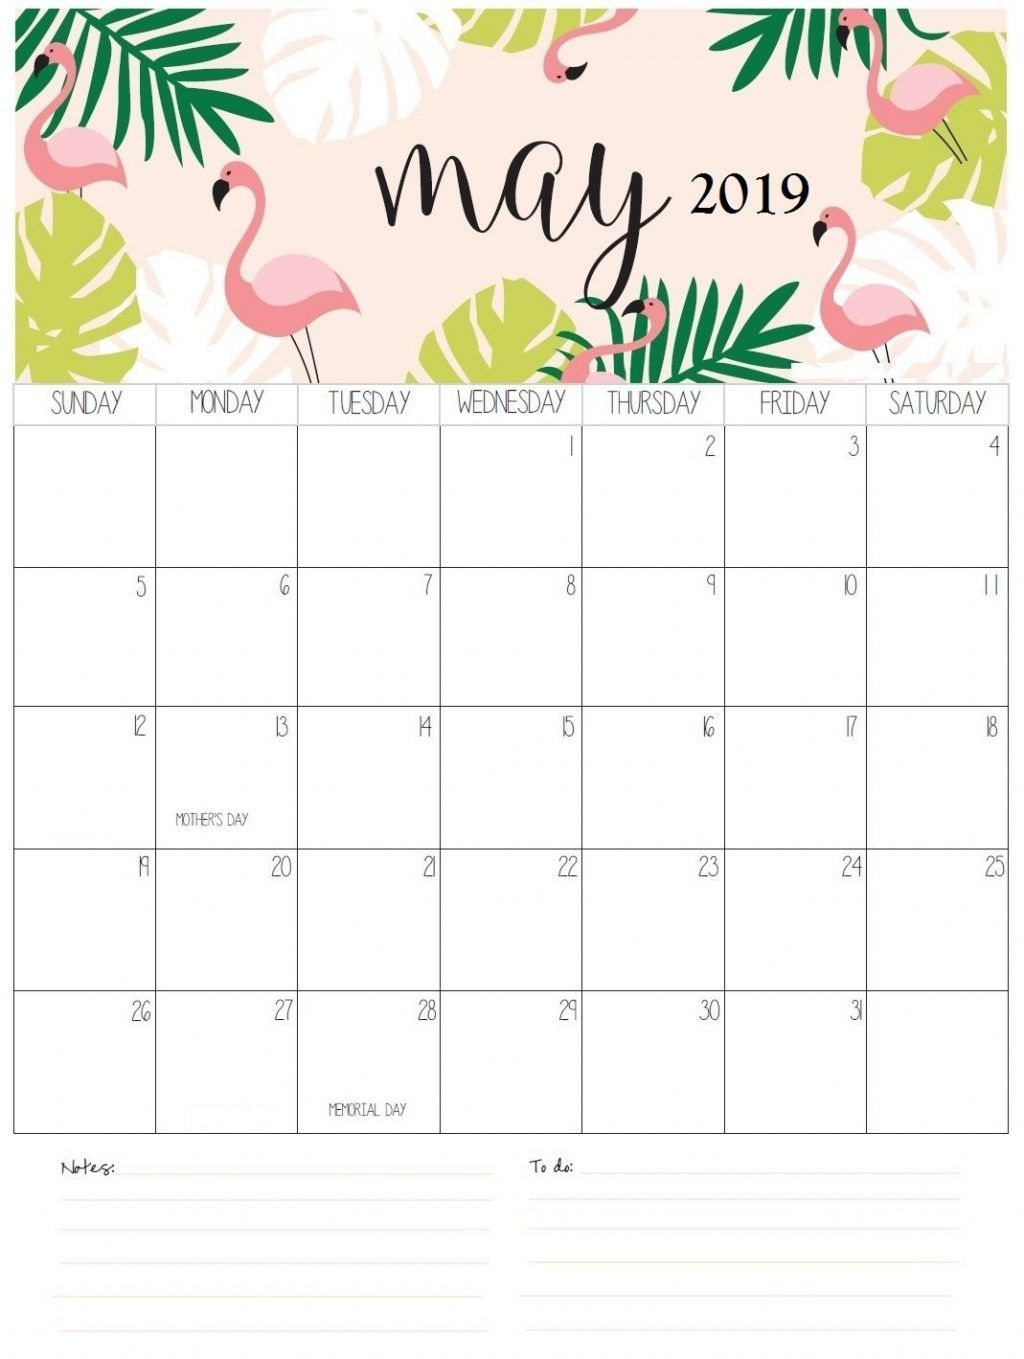 Editable May 2019 Calendar Word Template In Portrait And Landscape